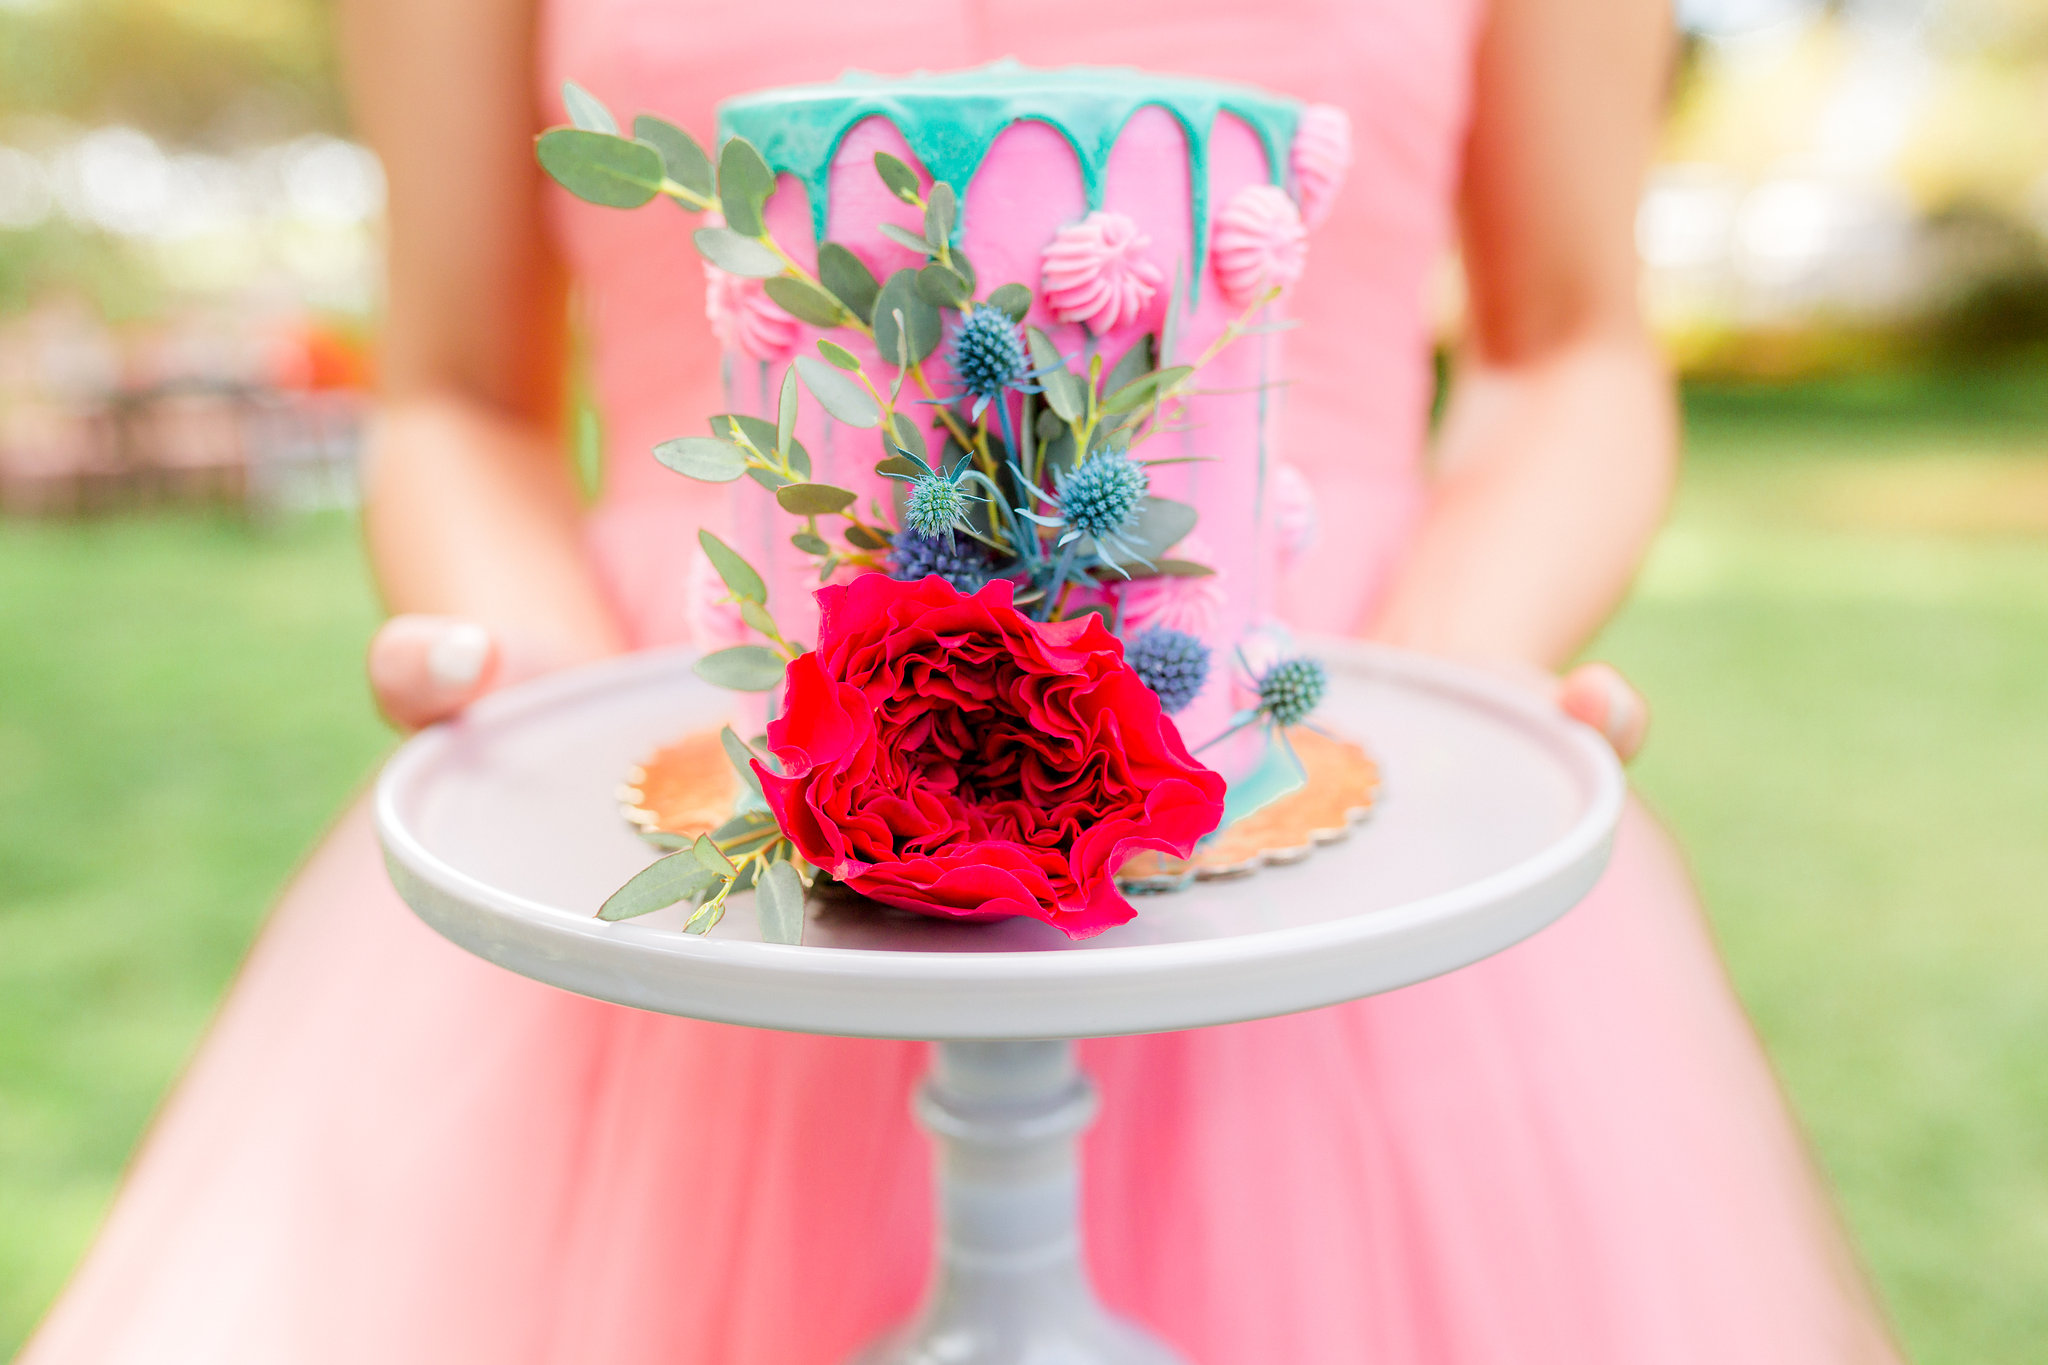 Pink frosted cake with teal chocolate drip, buttercream accents and flowers. Photo:  Yasmin Roohi